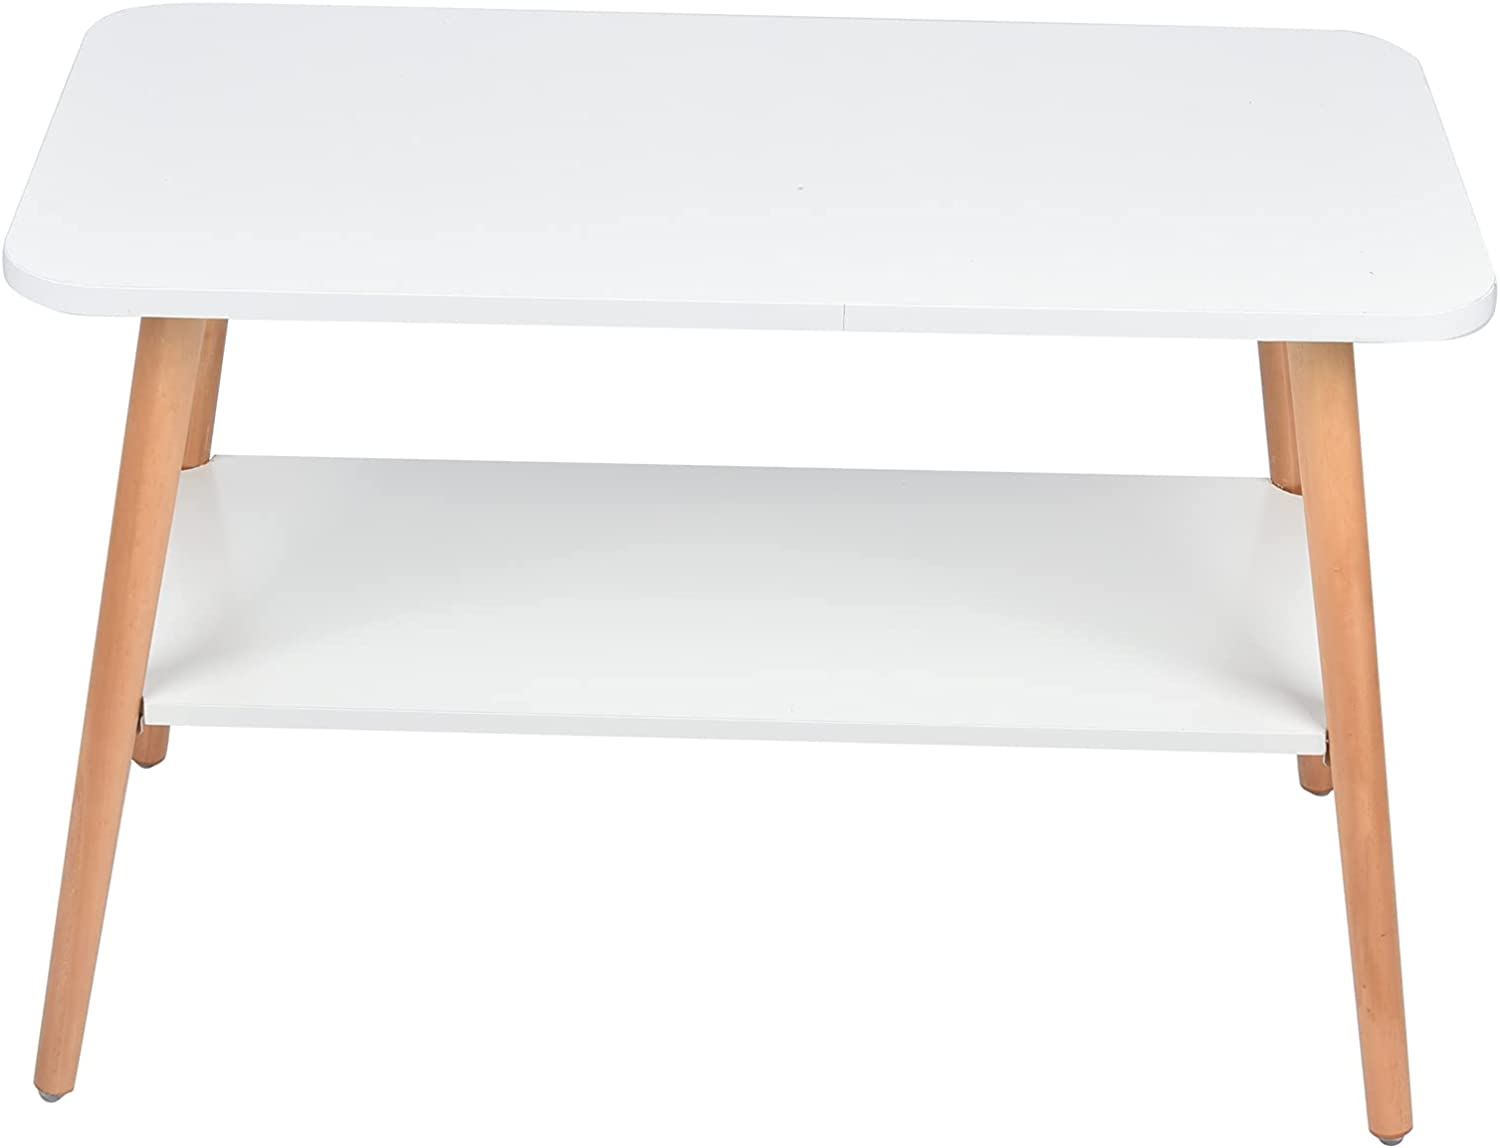 Coffee Table Max 47% OFF End OFFicial Smooth for Surface Study Wood